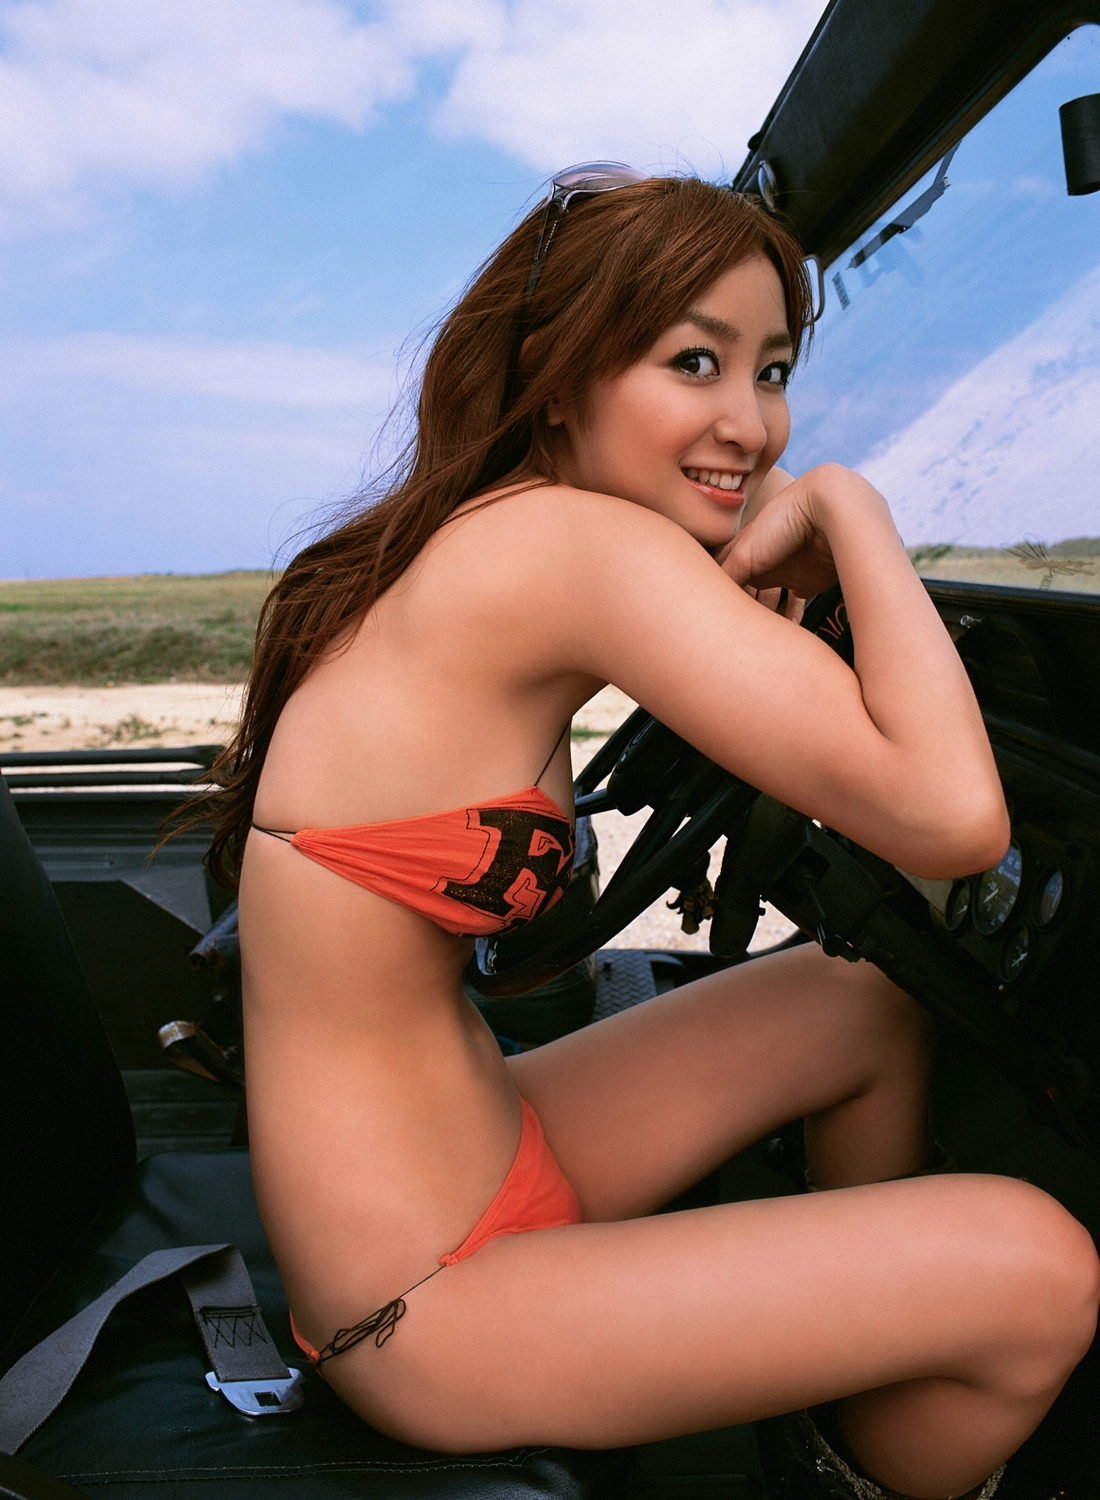 girlz pic aya kiguchi on jeep